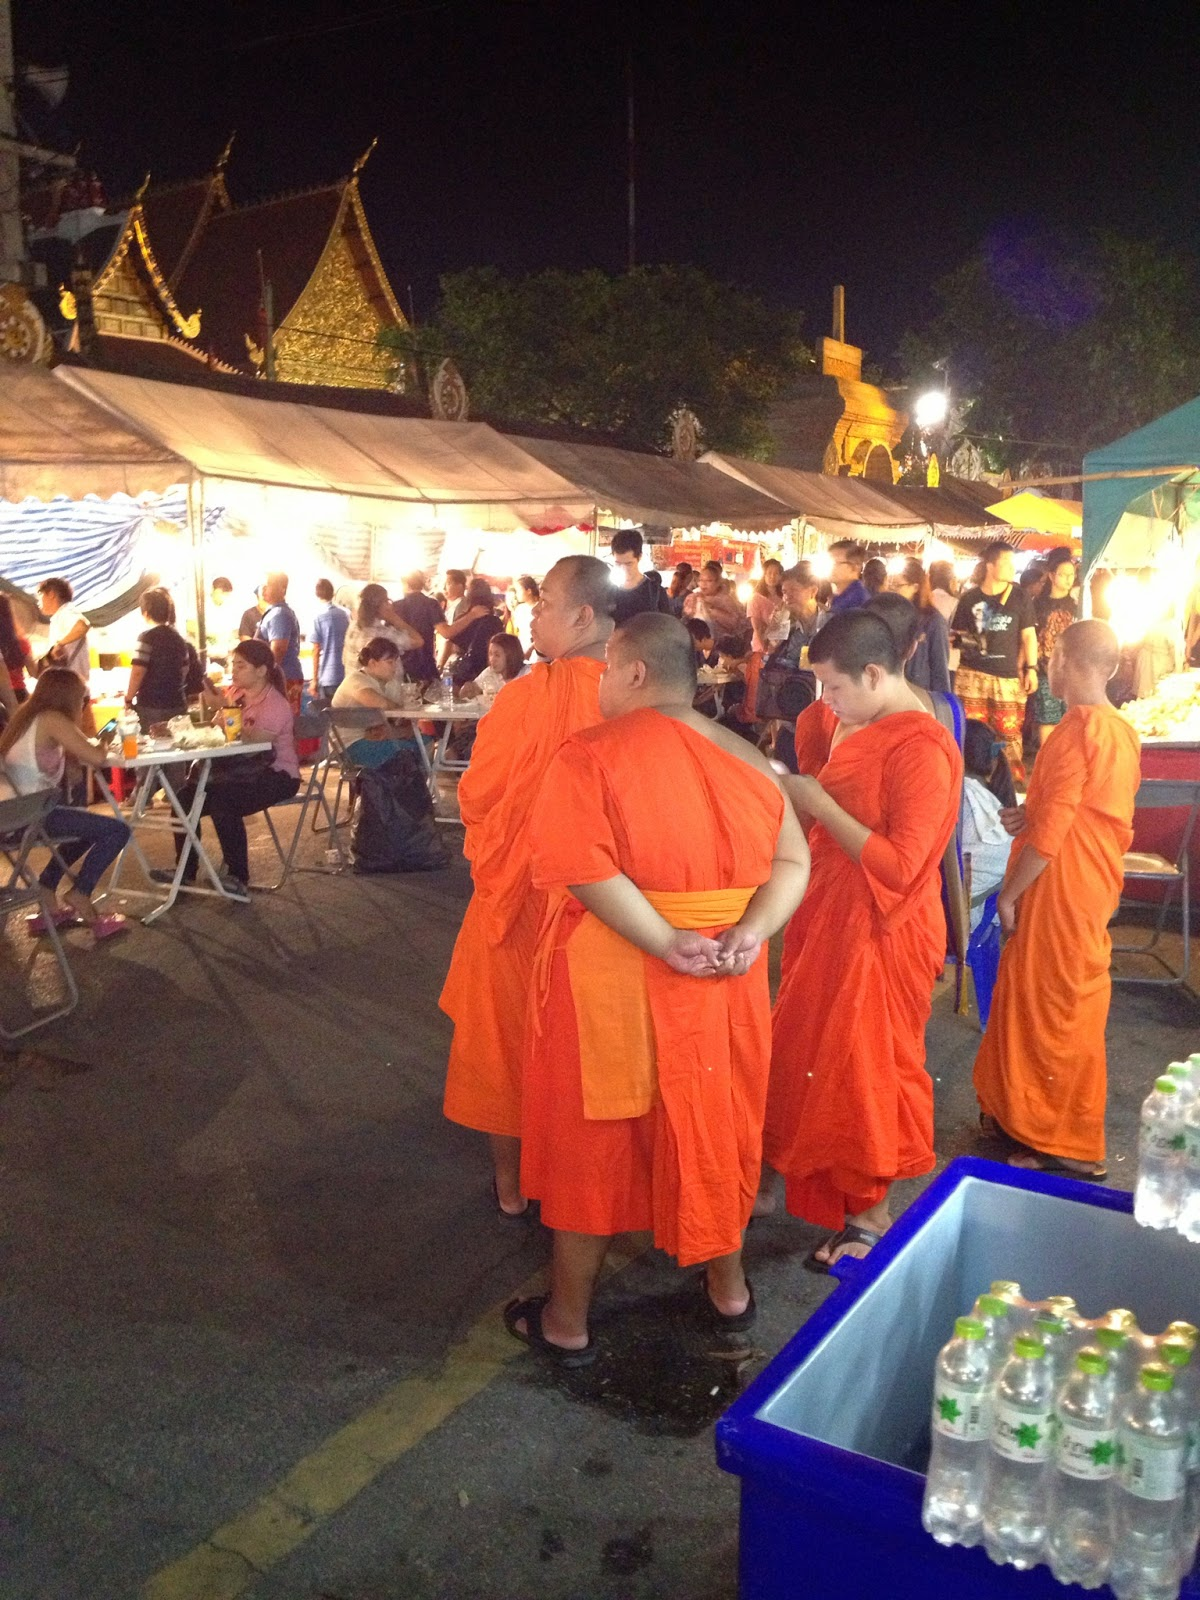 Chiang Mai - Even the monks come out to enjoy the festivities